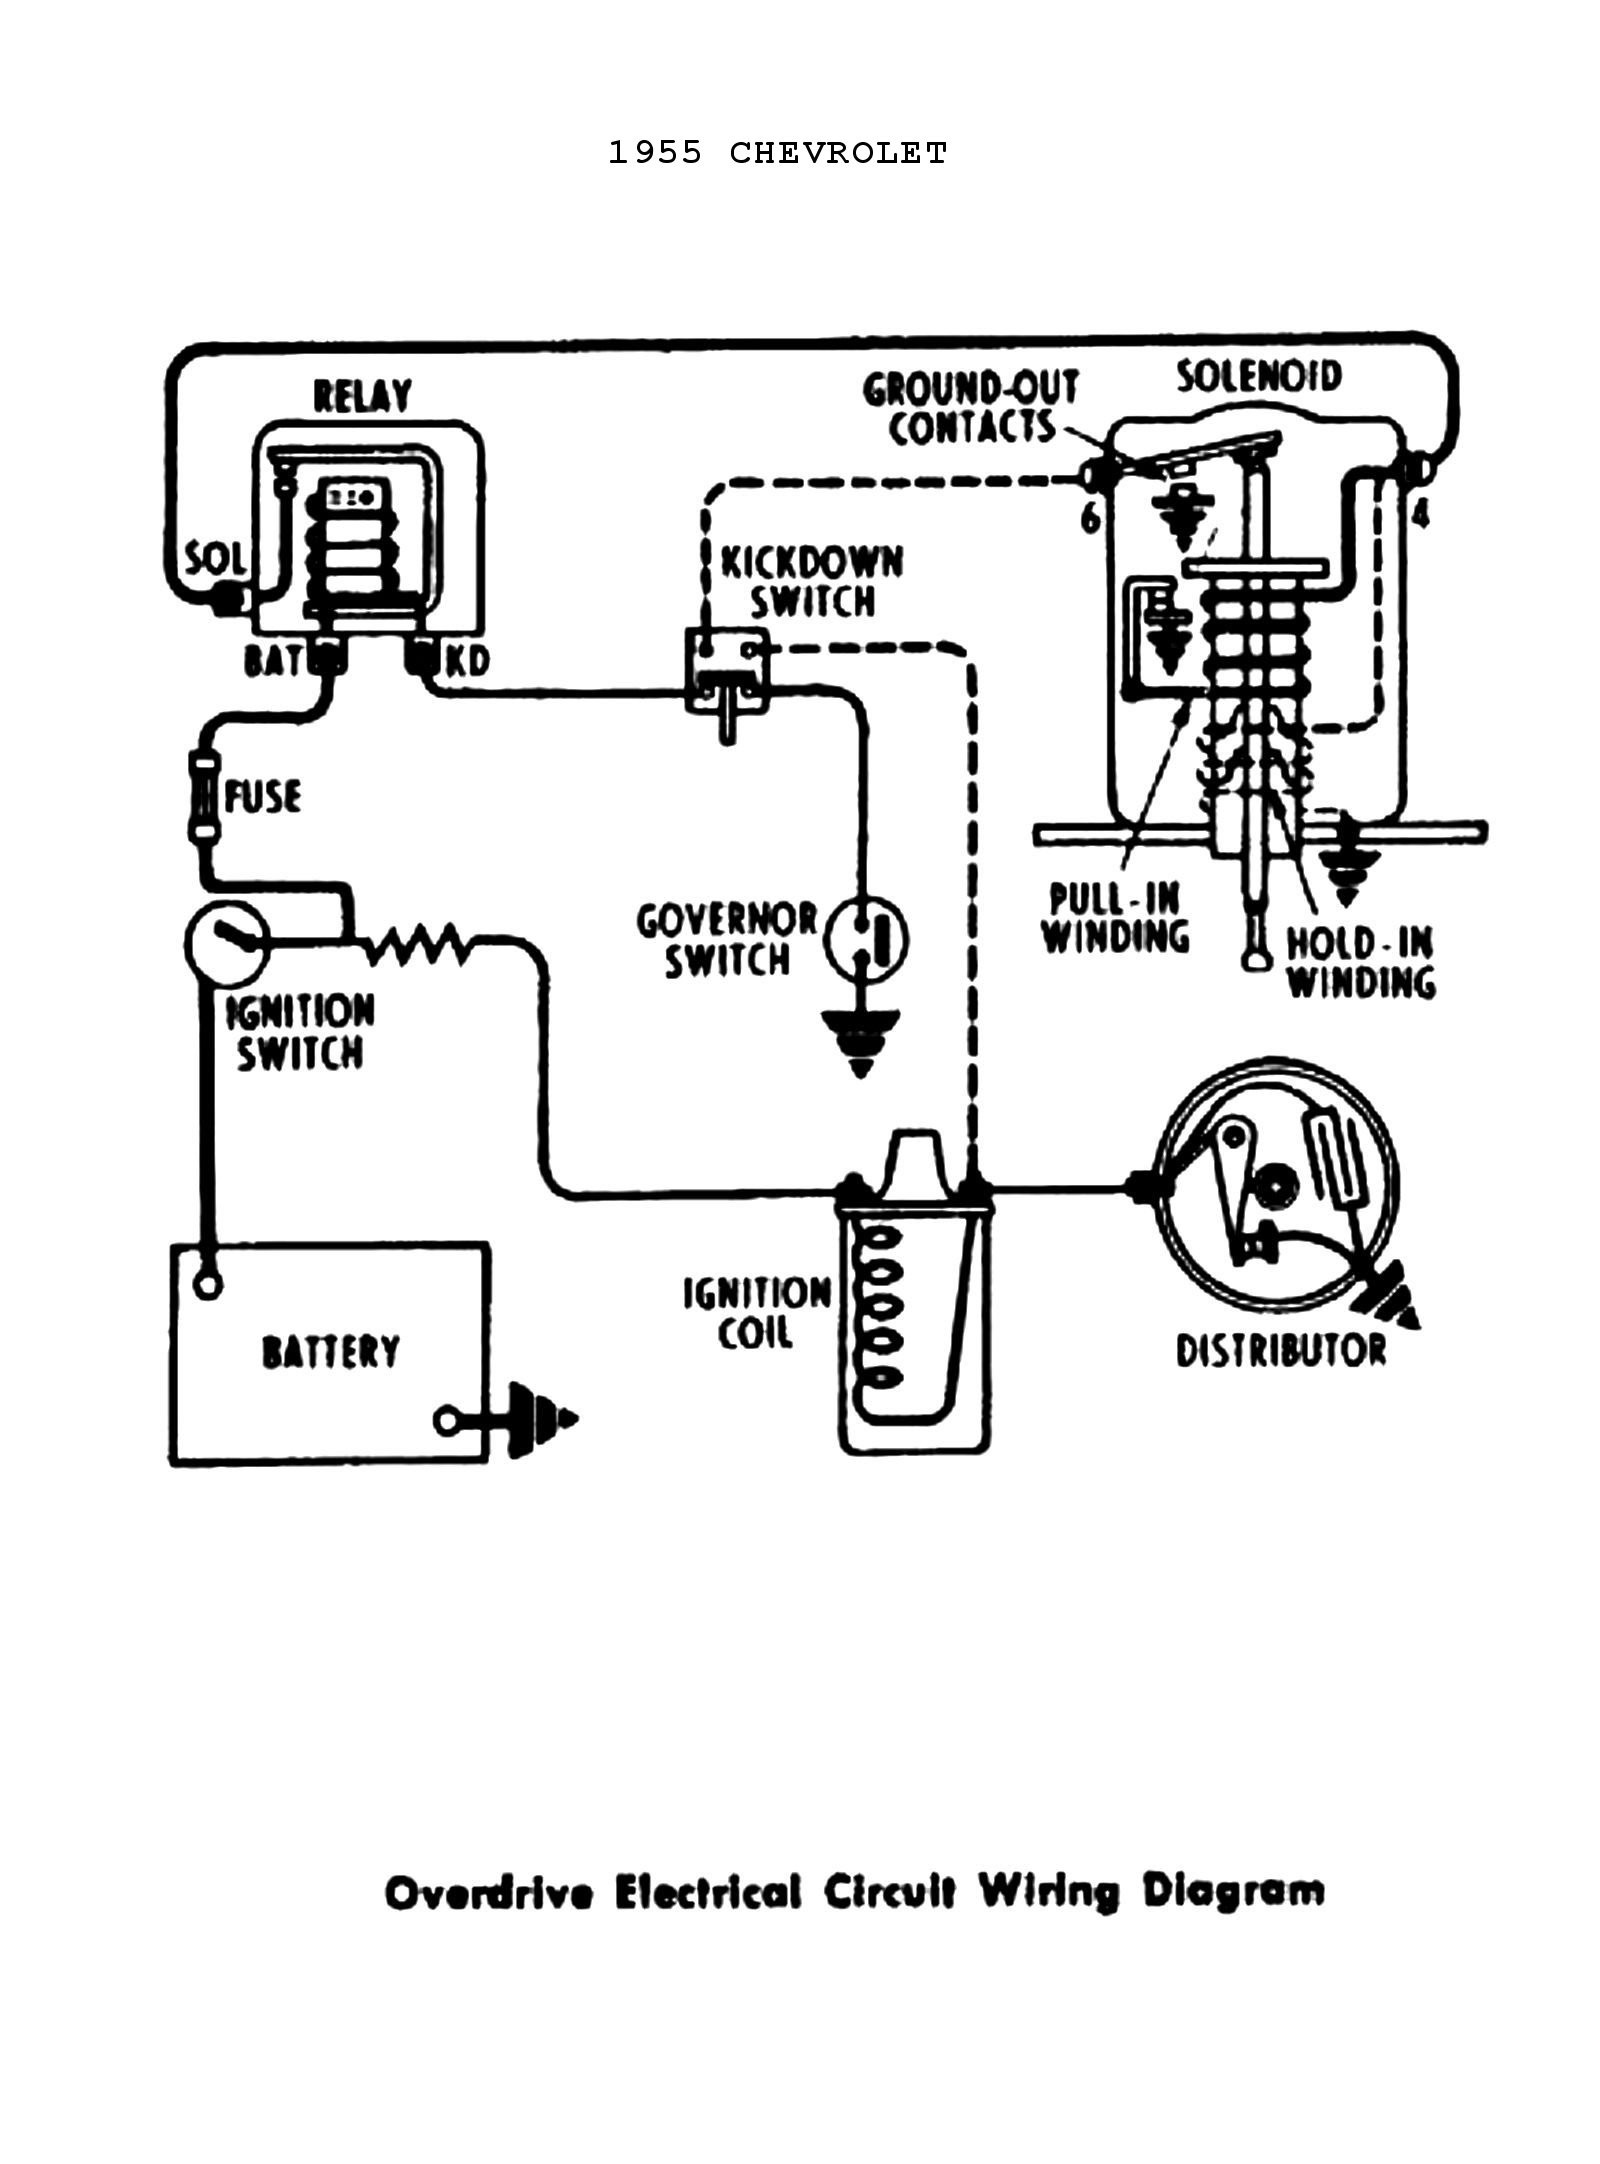 Power Window Switch Diagram Wiring 1993 Chevy Truck My Jeep In Addition 57 Heater Also 1996 Of